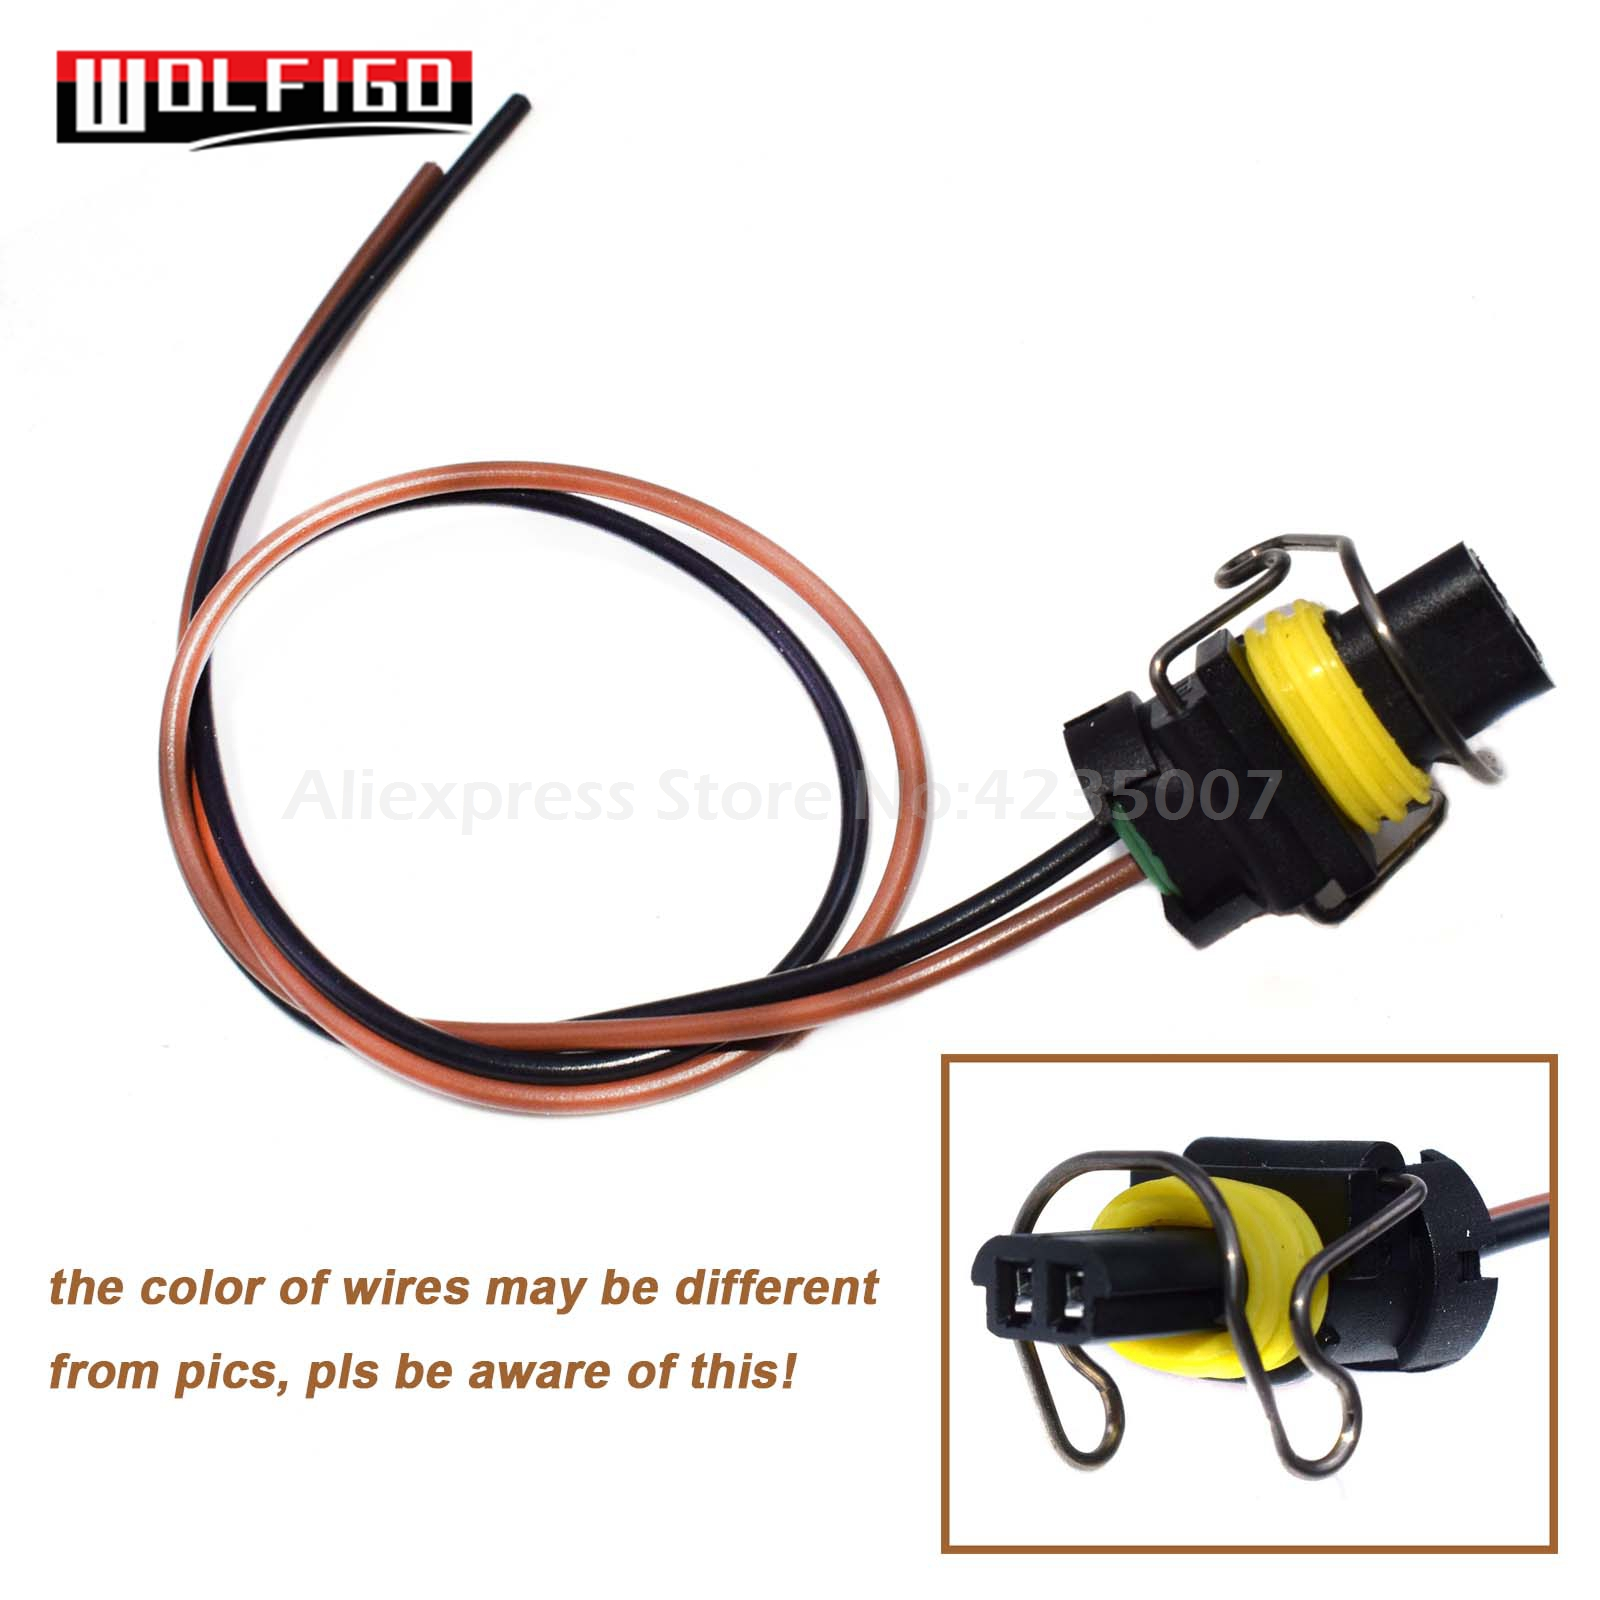 WOLFIGO 1 / 2 / 4 / 8PCS For Ford 6.0L/6.7L/7.3L Diesel F250 F350 F450 G-M 6.6L IPR VGT Solenoid 2-way Pigtail Connector Harness